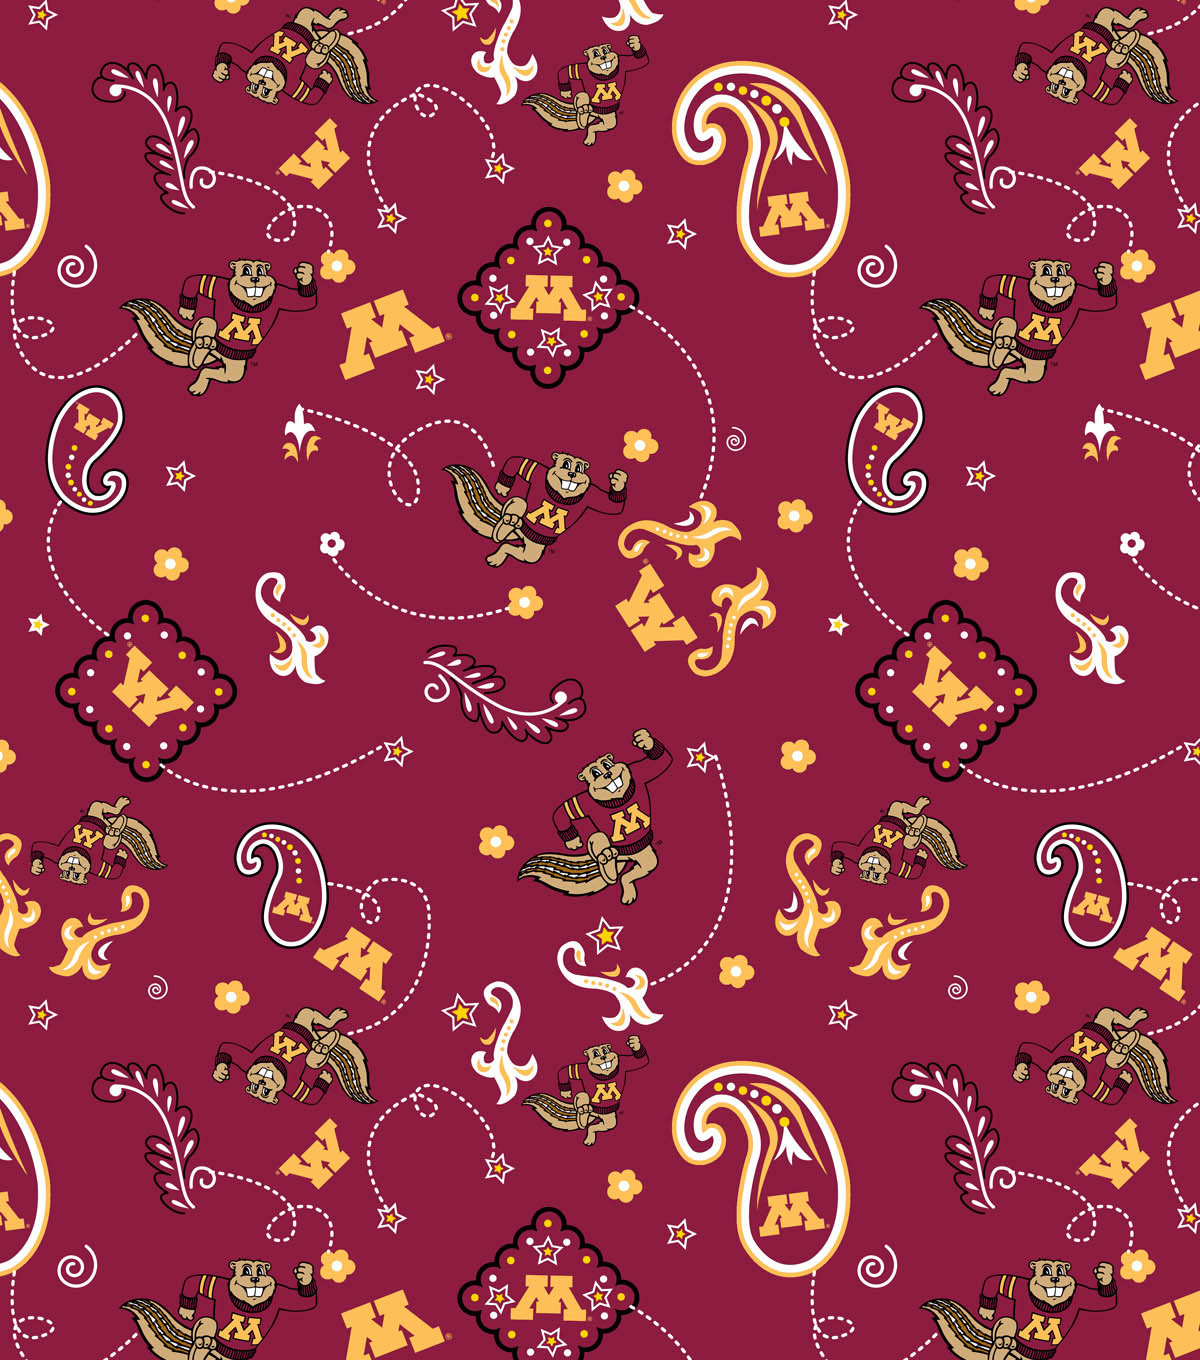 University of Minnesota Gophers Cotton Fabric -Bandana